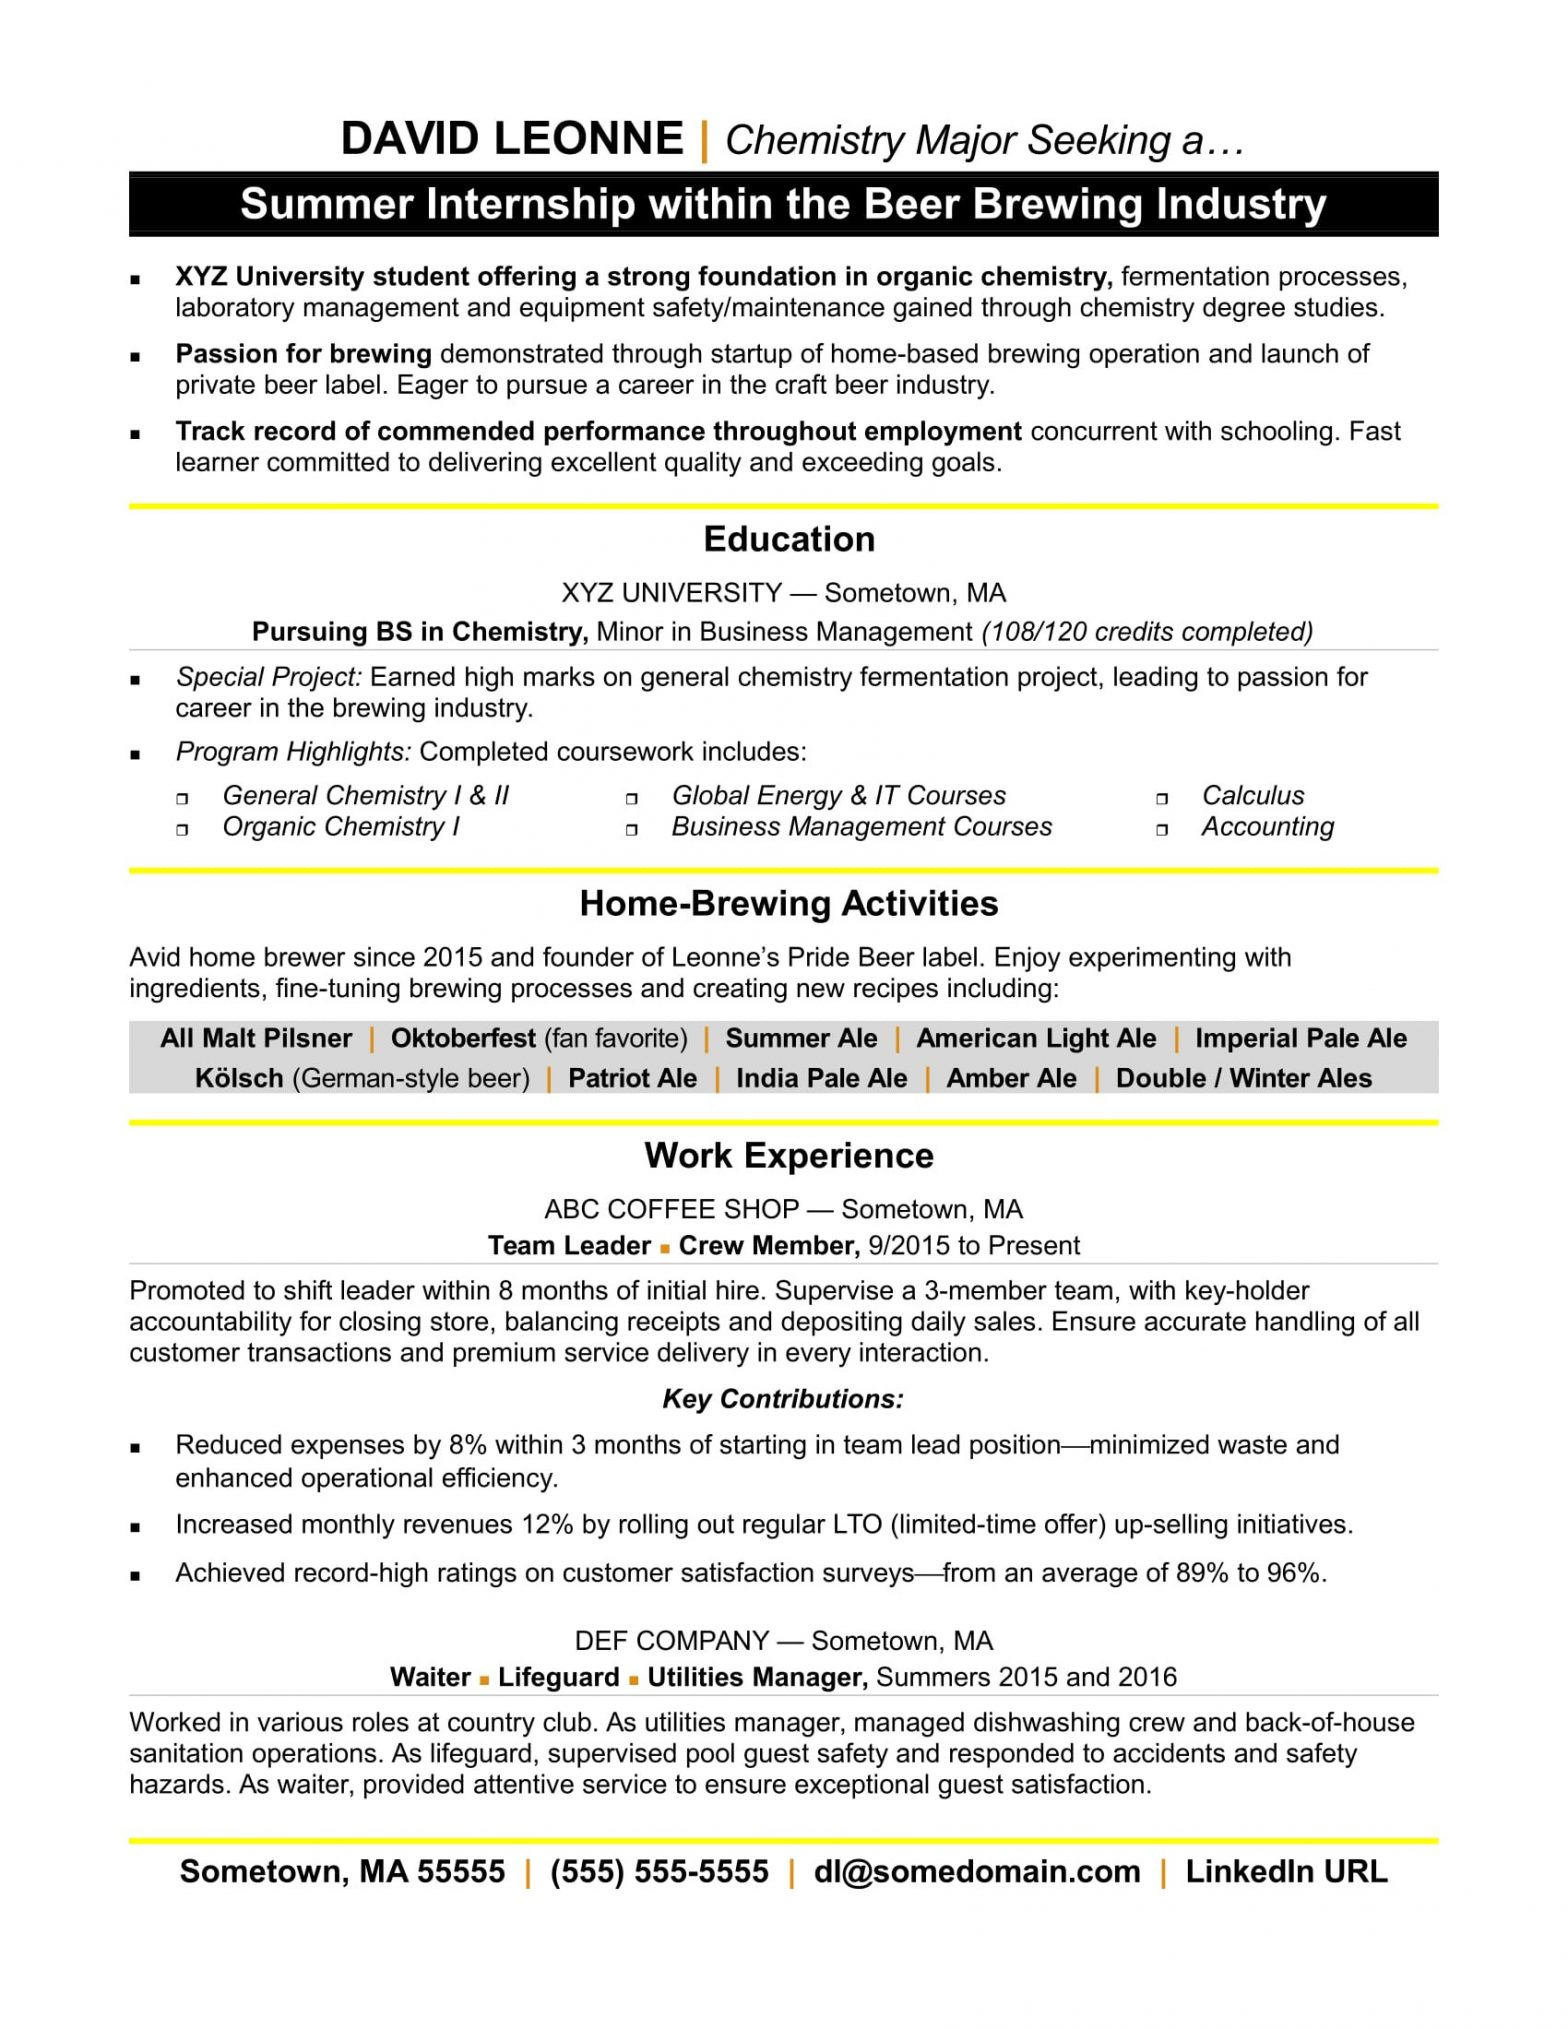 Sample Resume with Co Op Experience Resume for Internship Monster.com